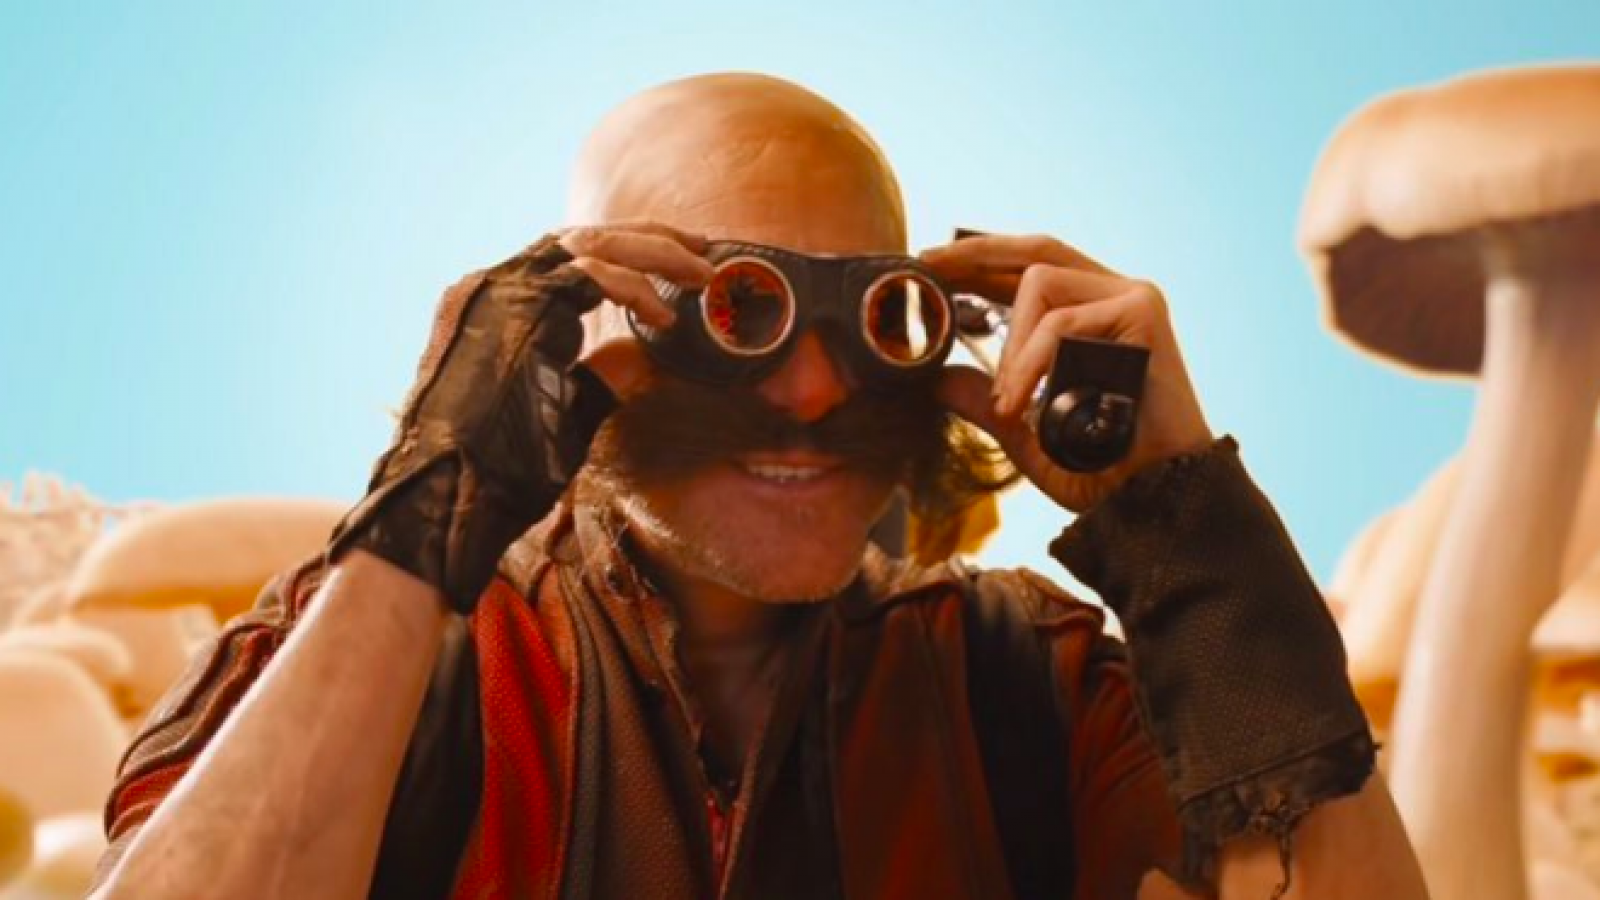 Jim Carrey As Eggman Is The Saving Grace For New Sonic Movie According To Some Fans